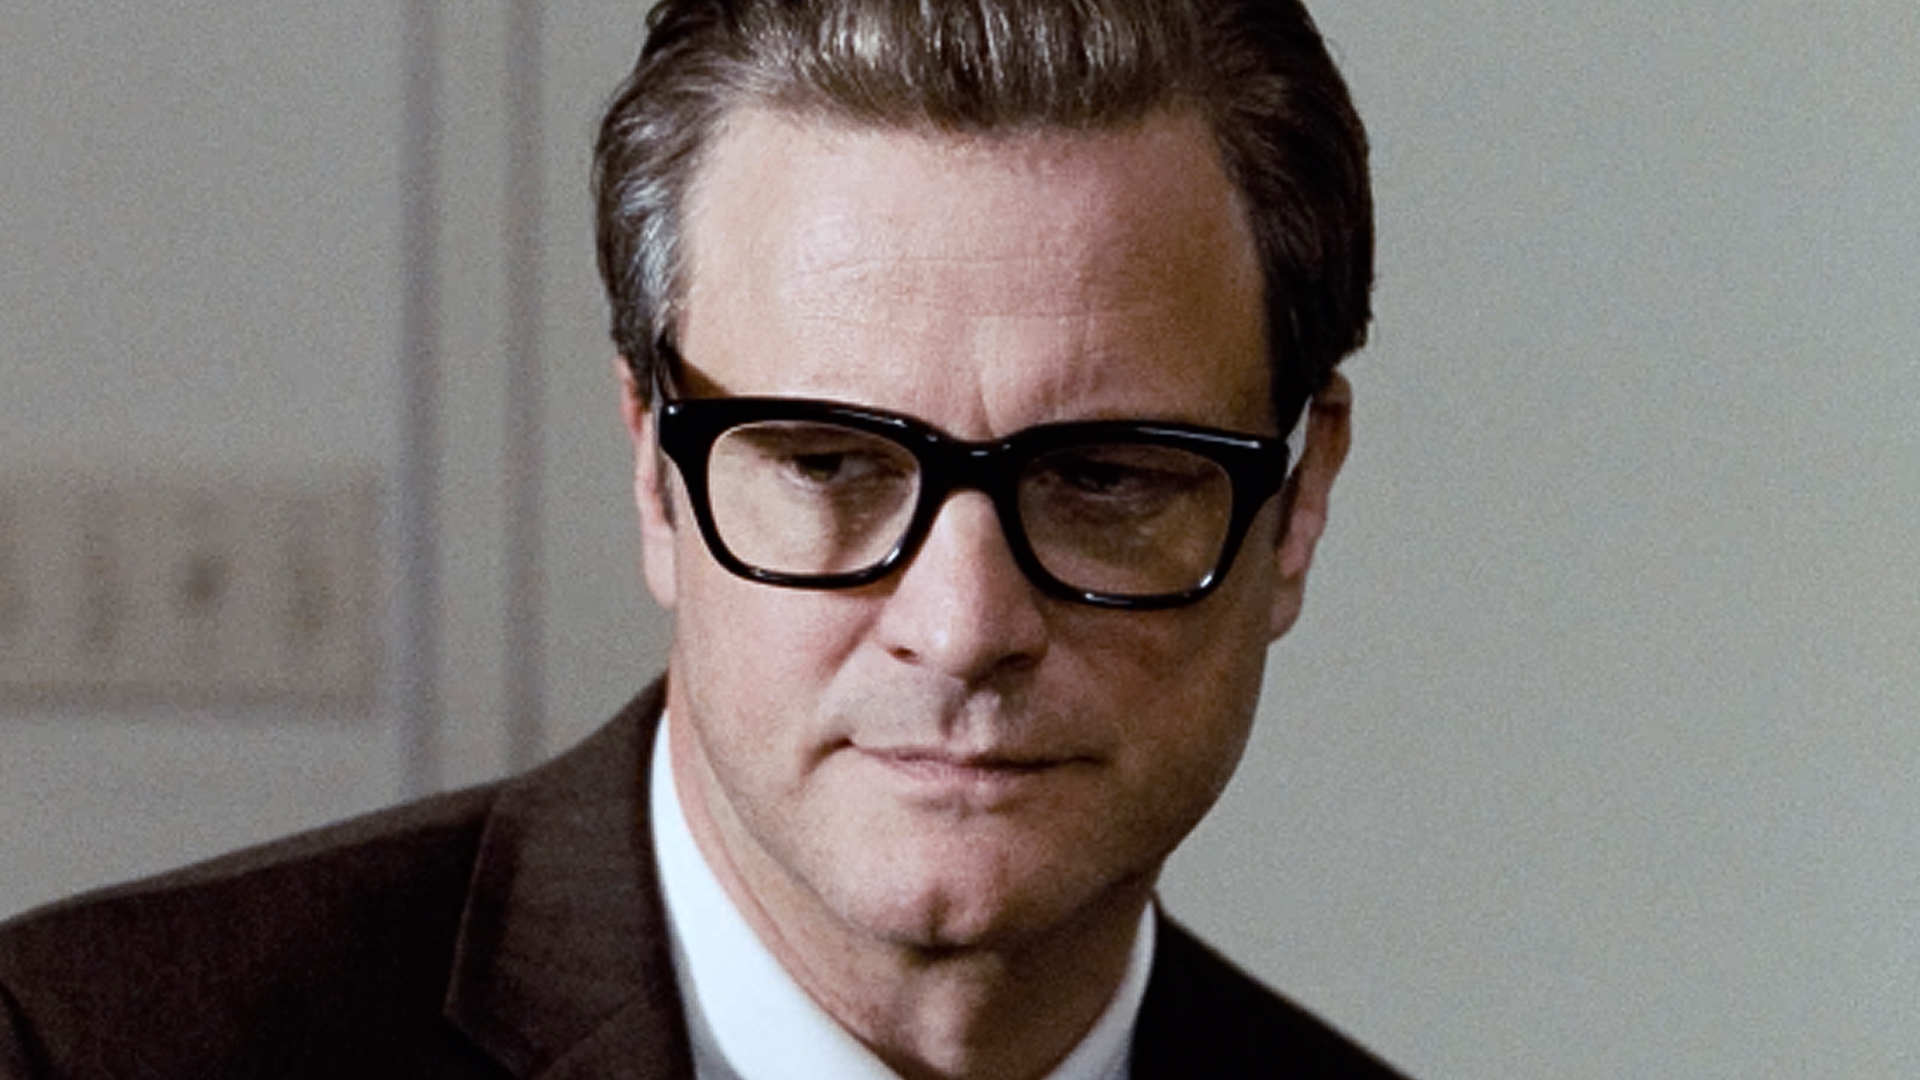 1920x1080 - Colin Firth Wallpapers 11